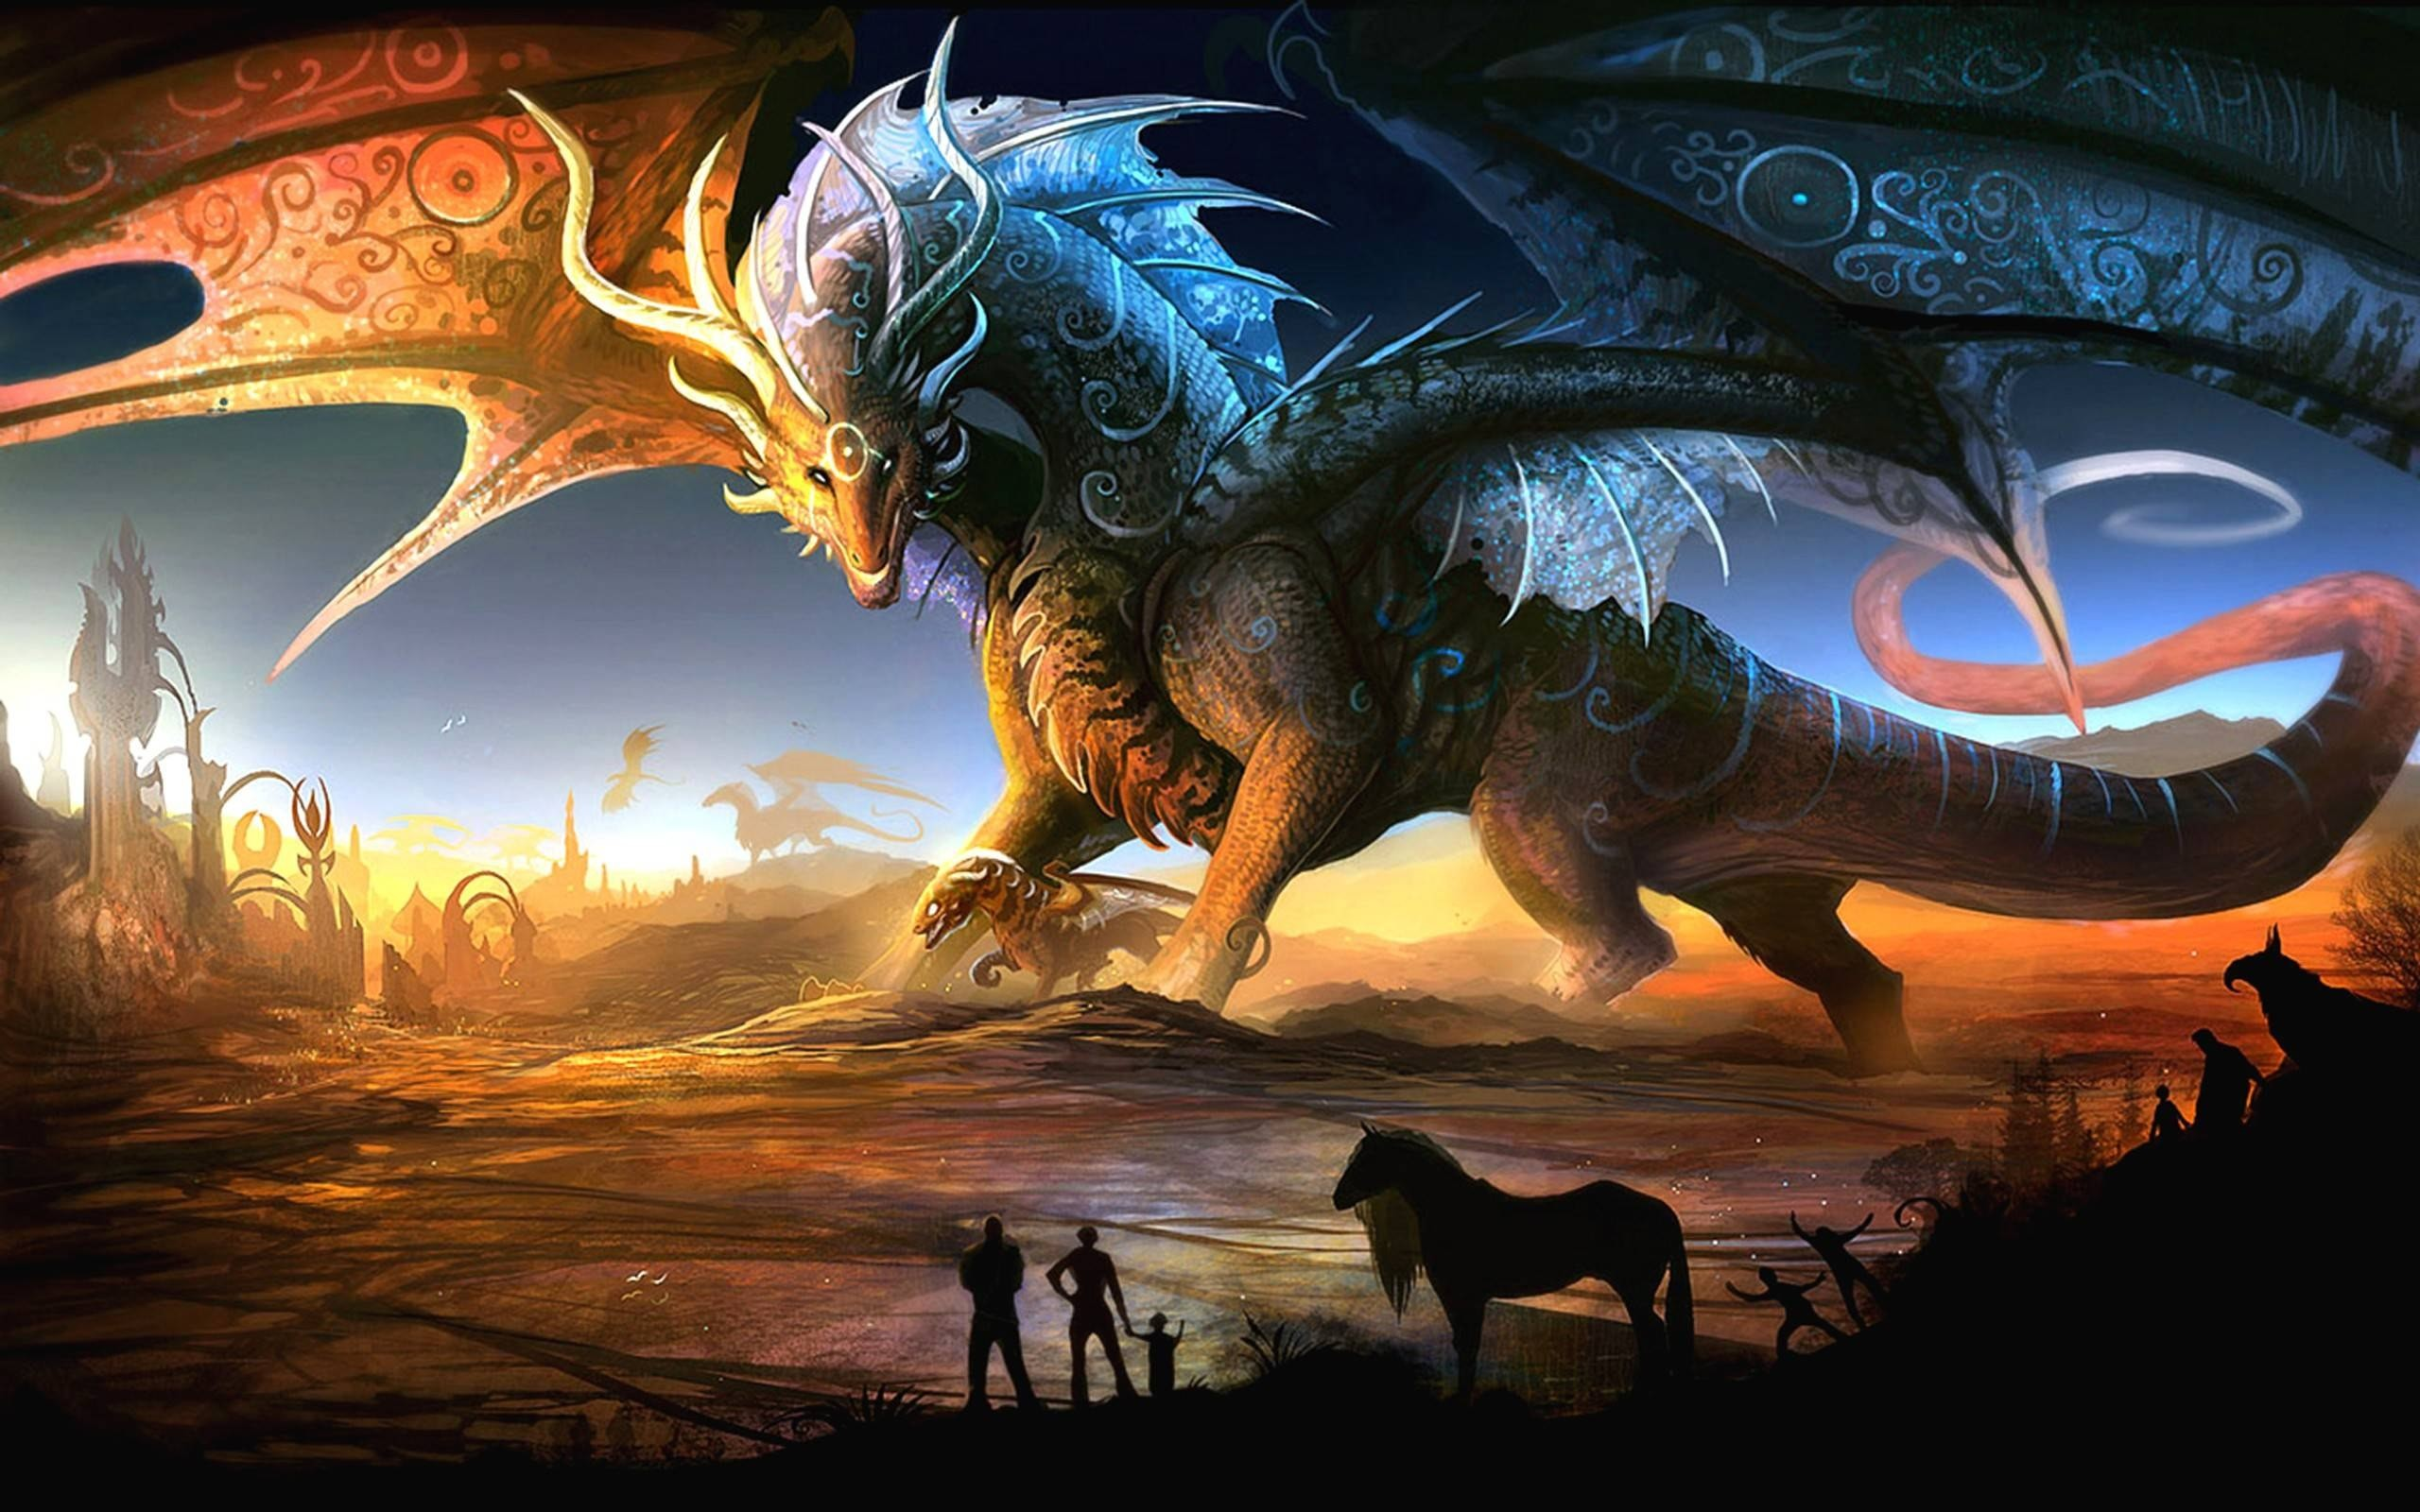 dragon images wallpaper (71+ pictures)